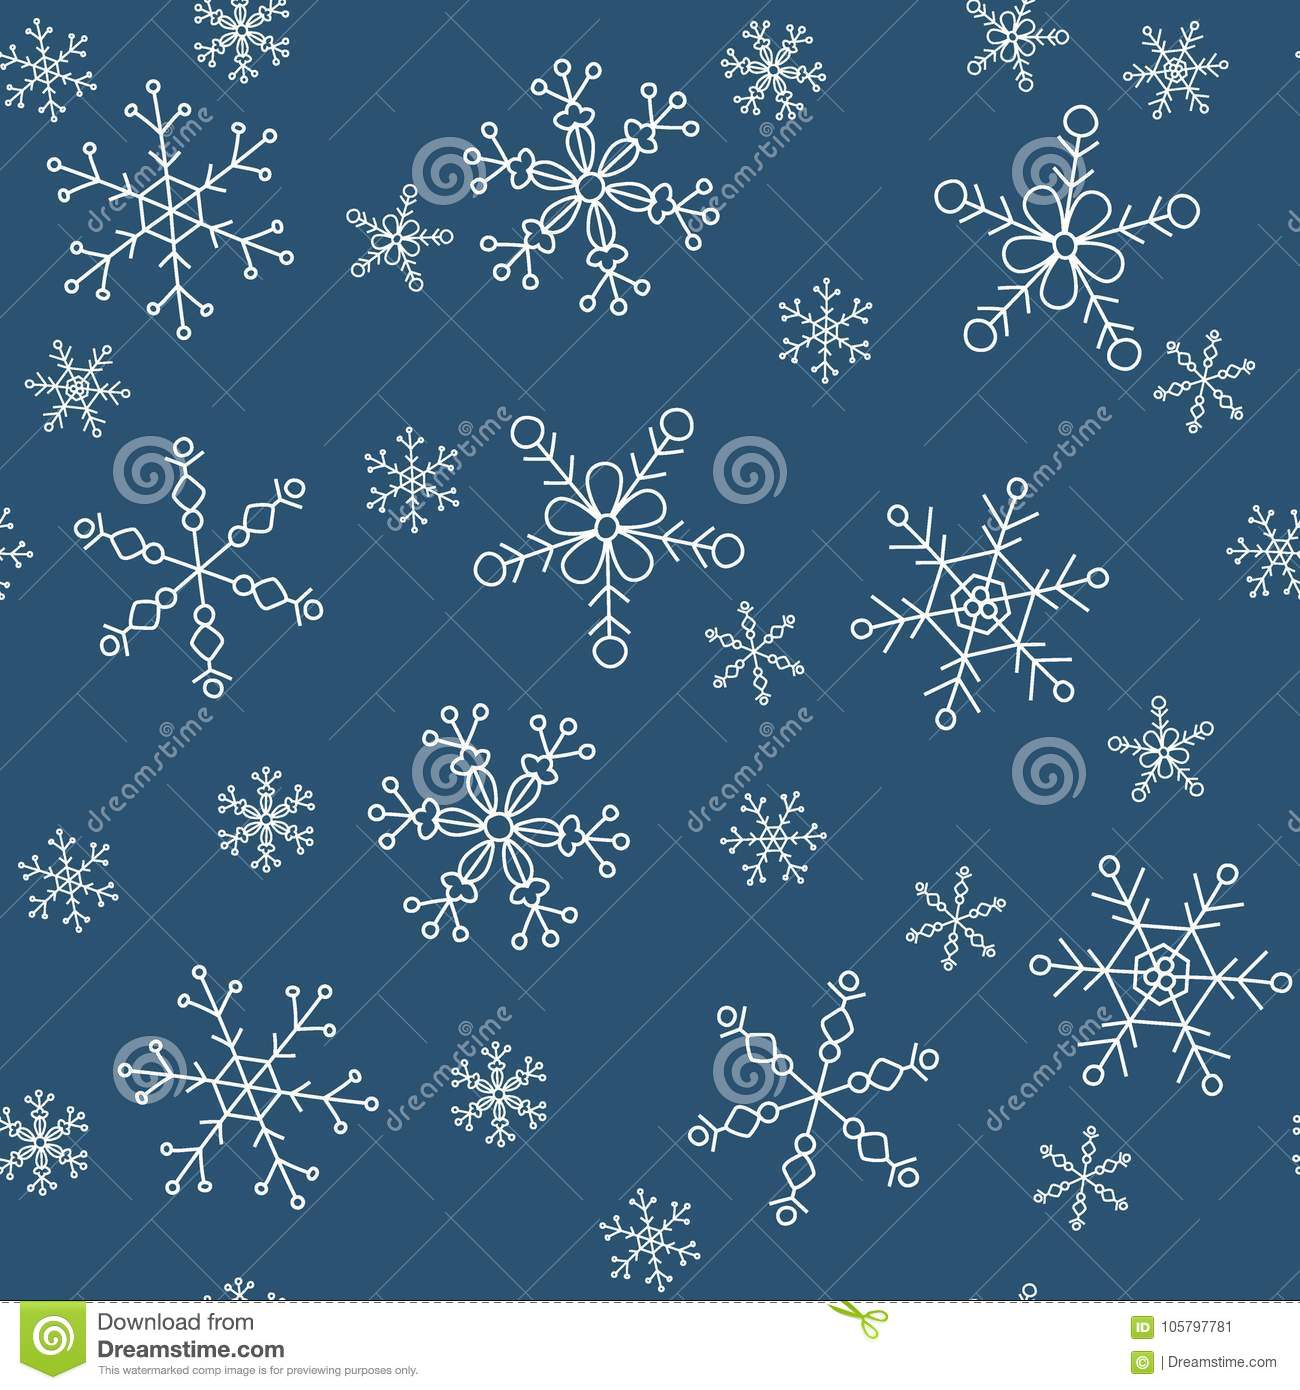 snowflakes of different styles on a background of blue pattern